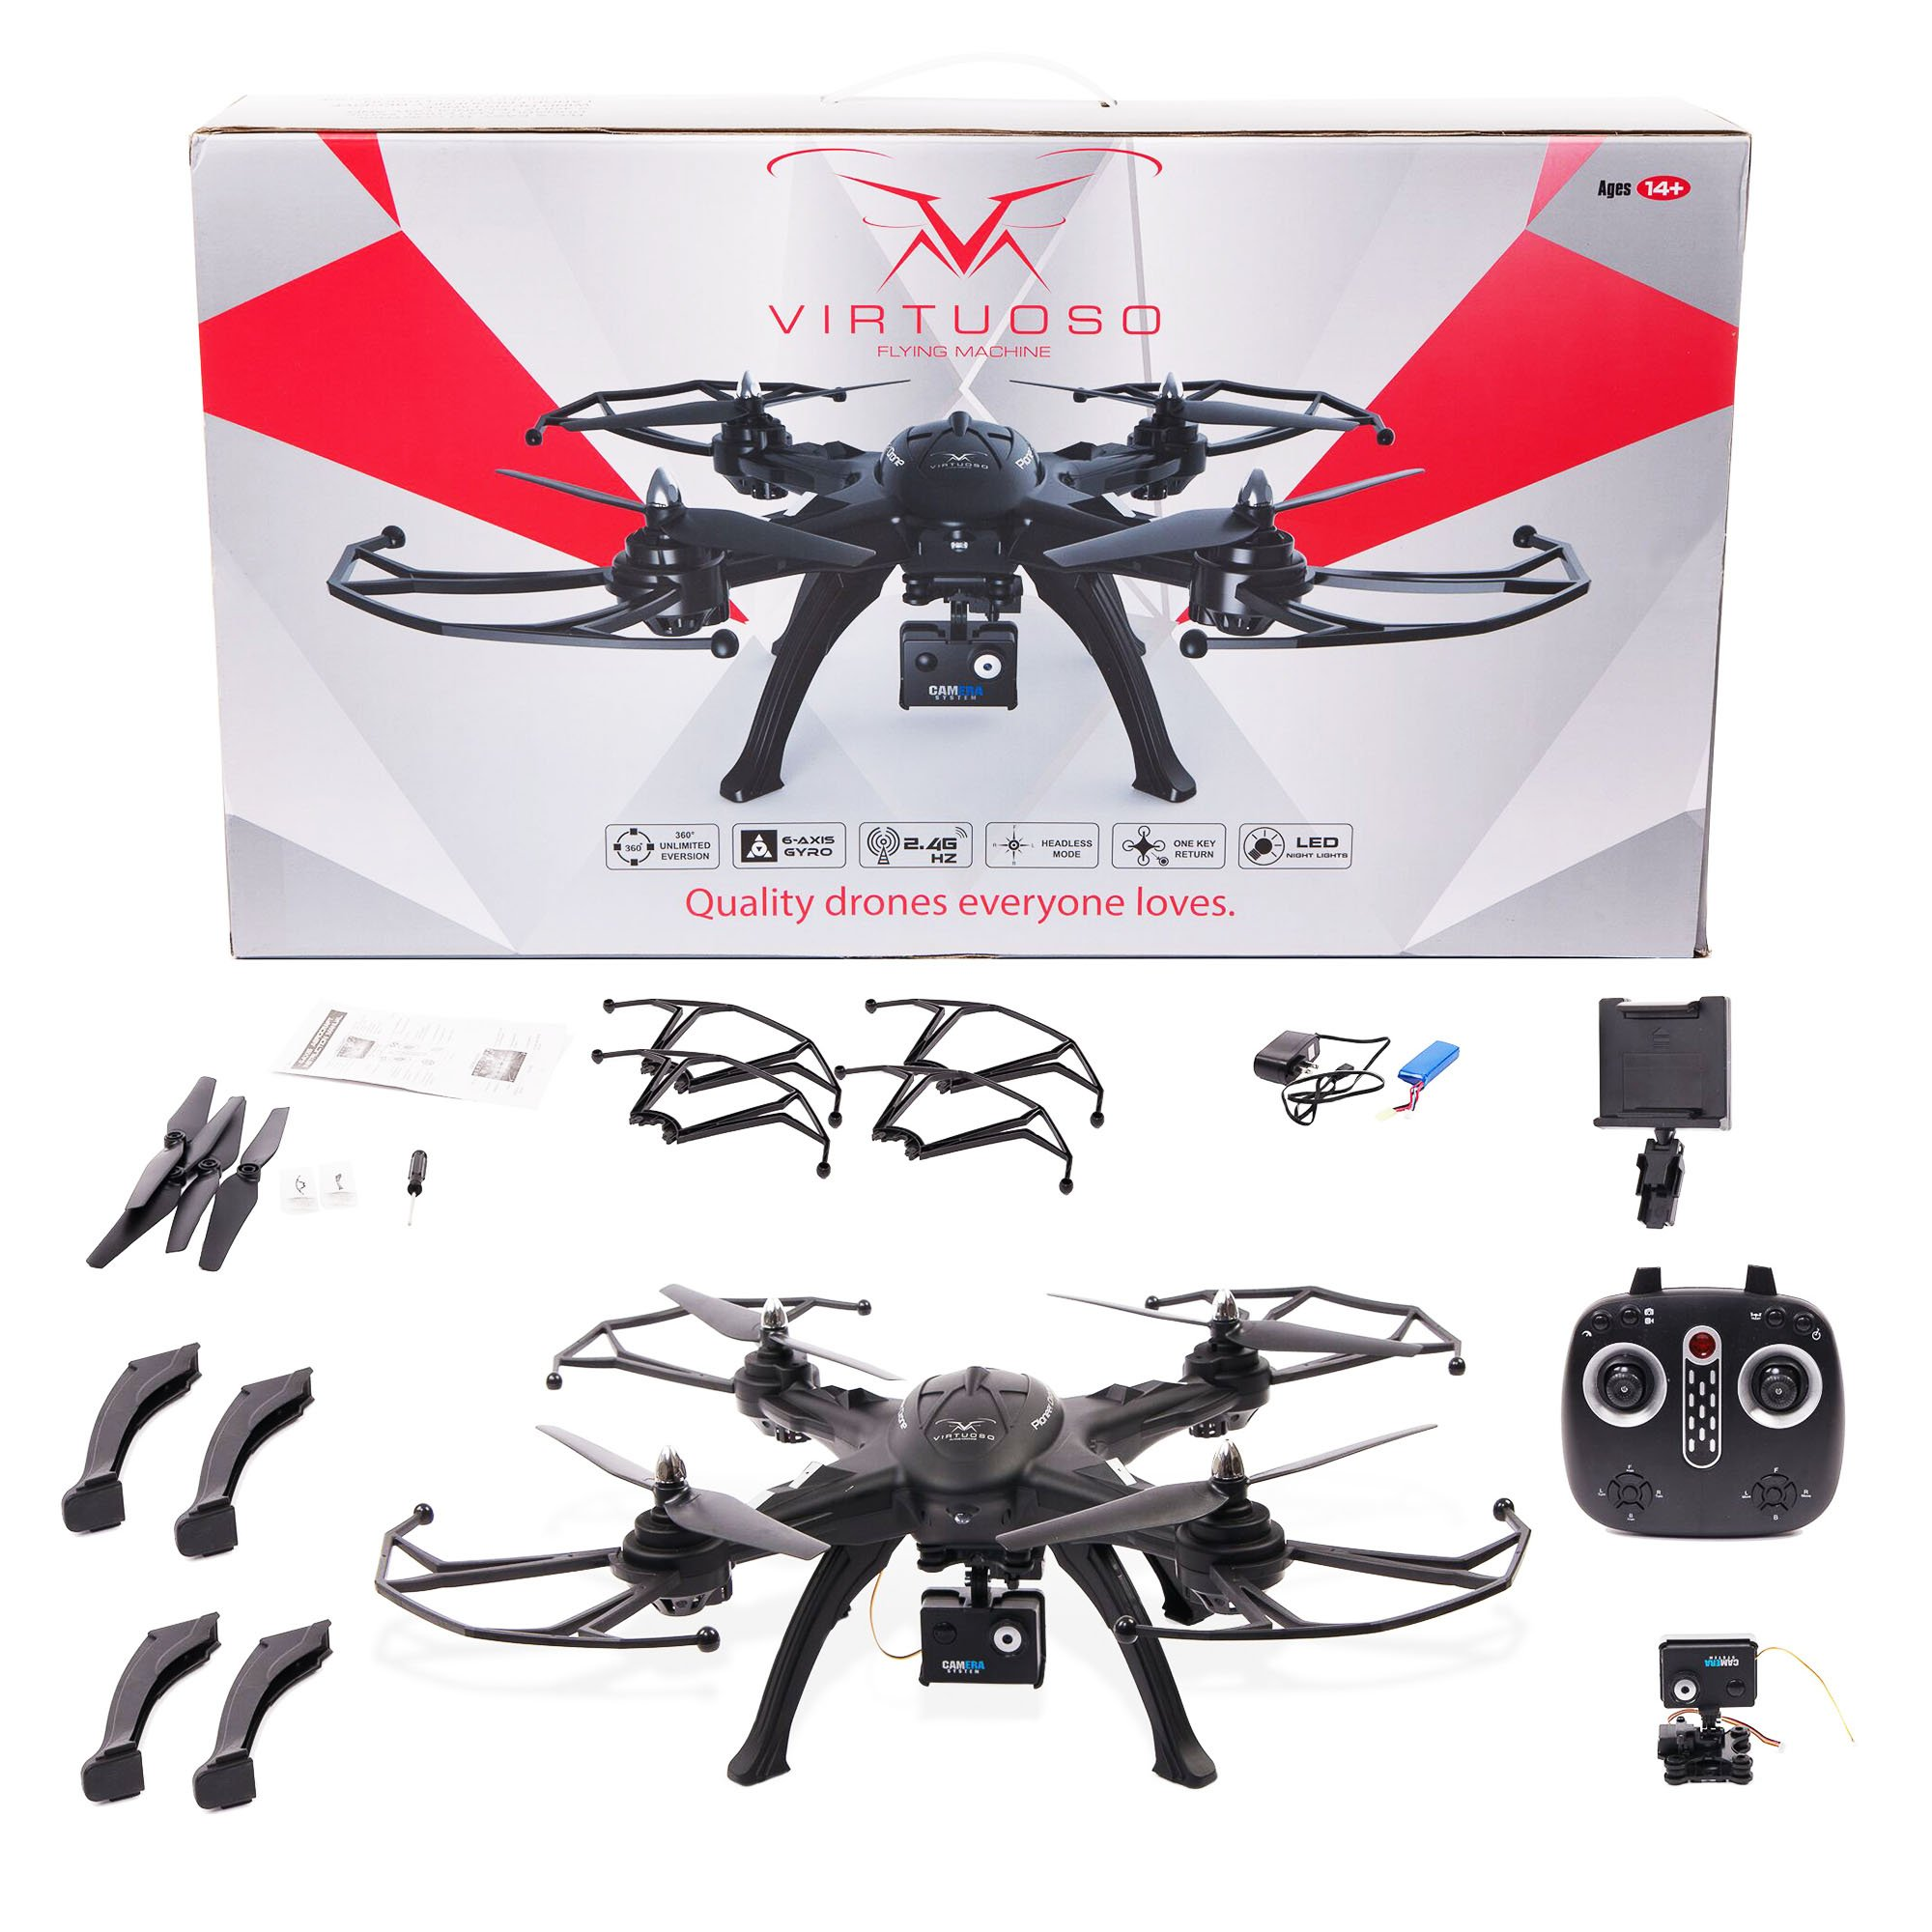 Quadcopter Flying Drone with HD Camera (720p) 6-Axis Remote Control RC Toy w/ LED Lights, Long Flight Time | Beginner, Easy to Fly | Altitude Hold | Rechargeable Li-Po Battery 7.4v 1800mAh by Virtuoso